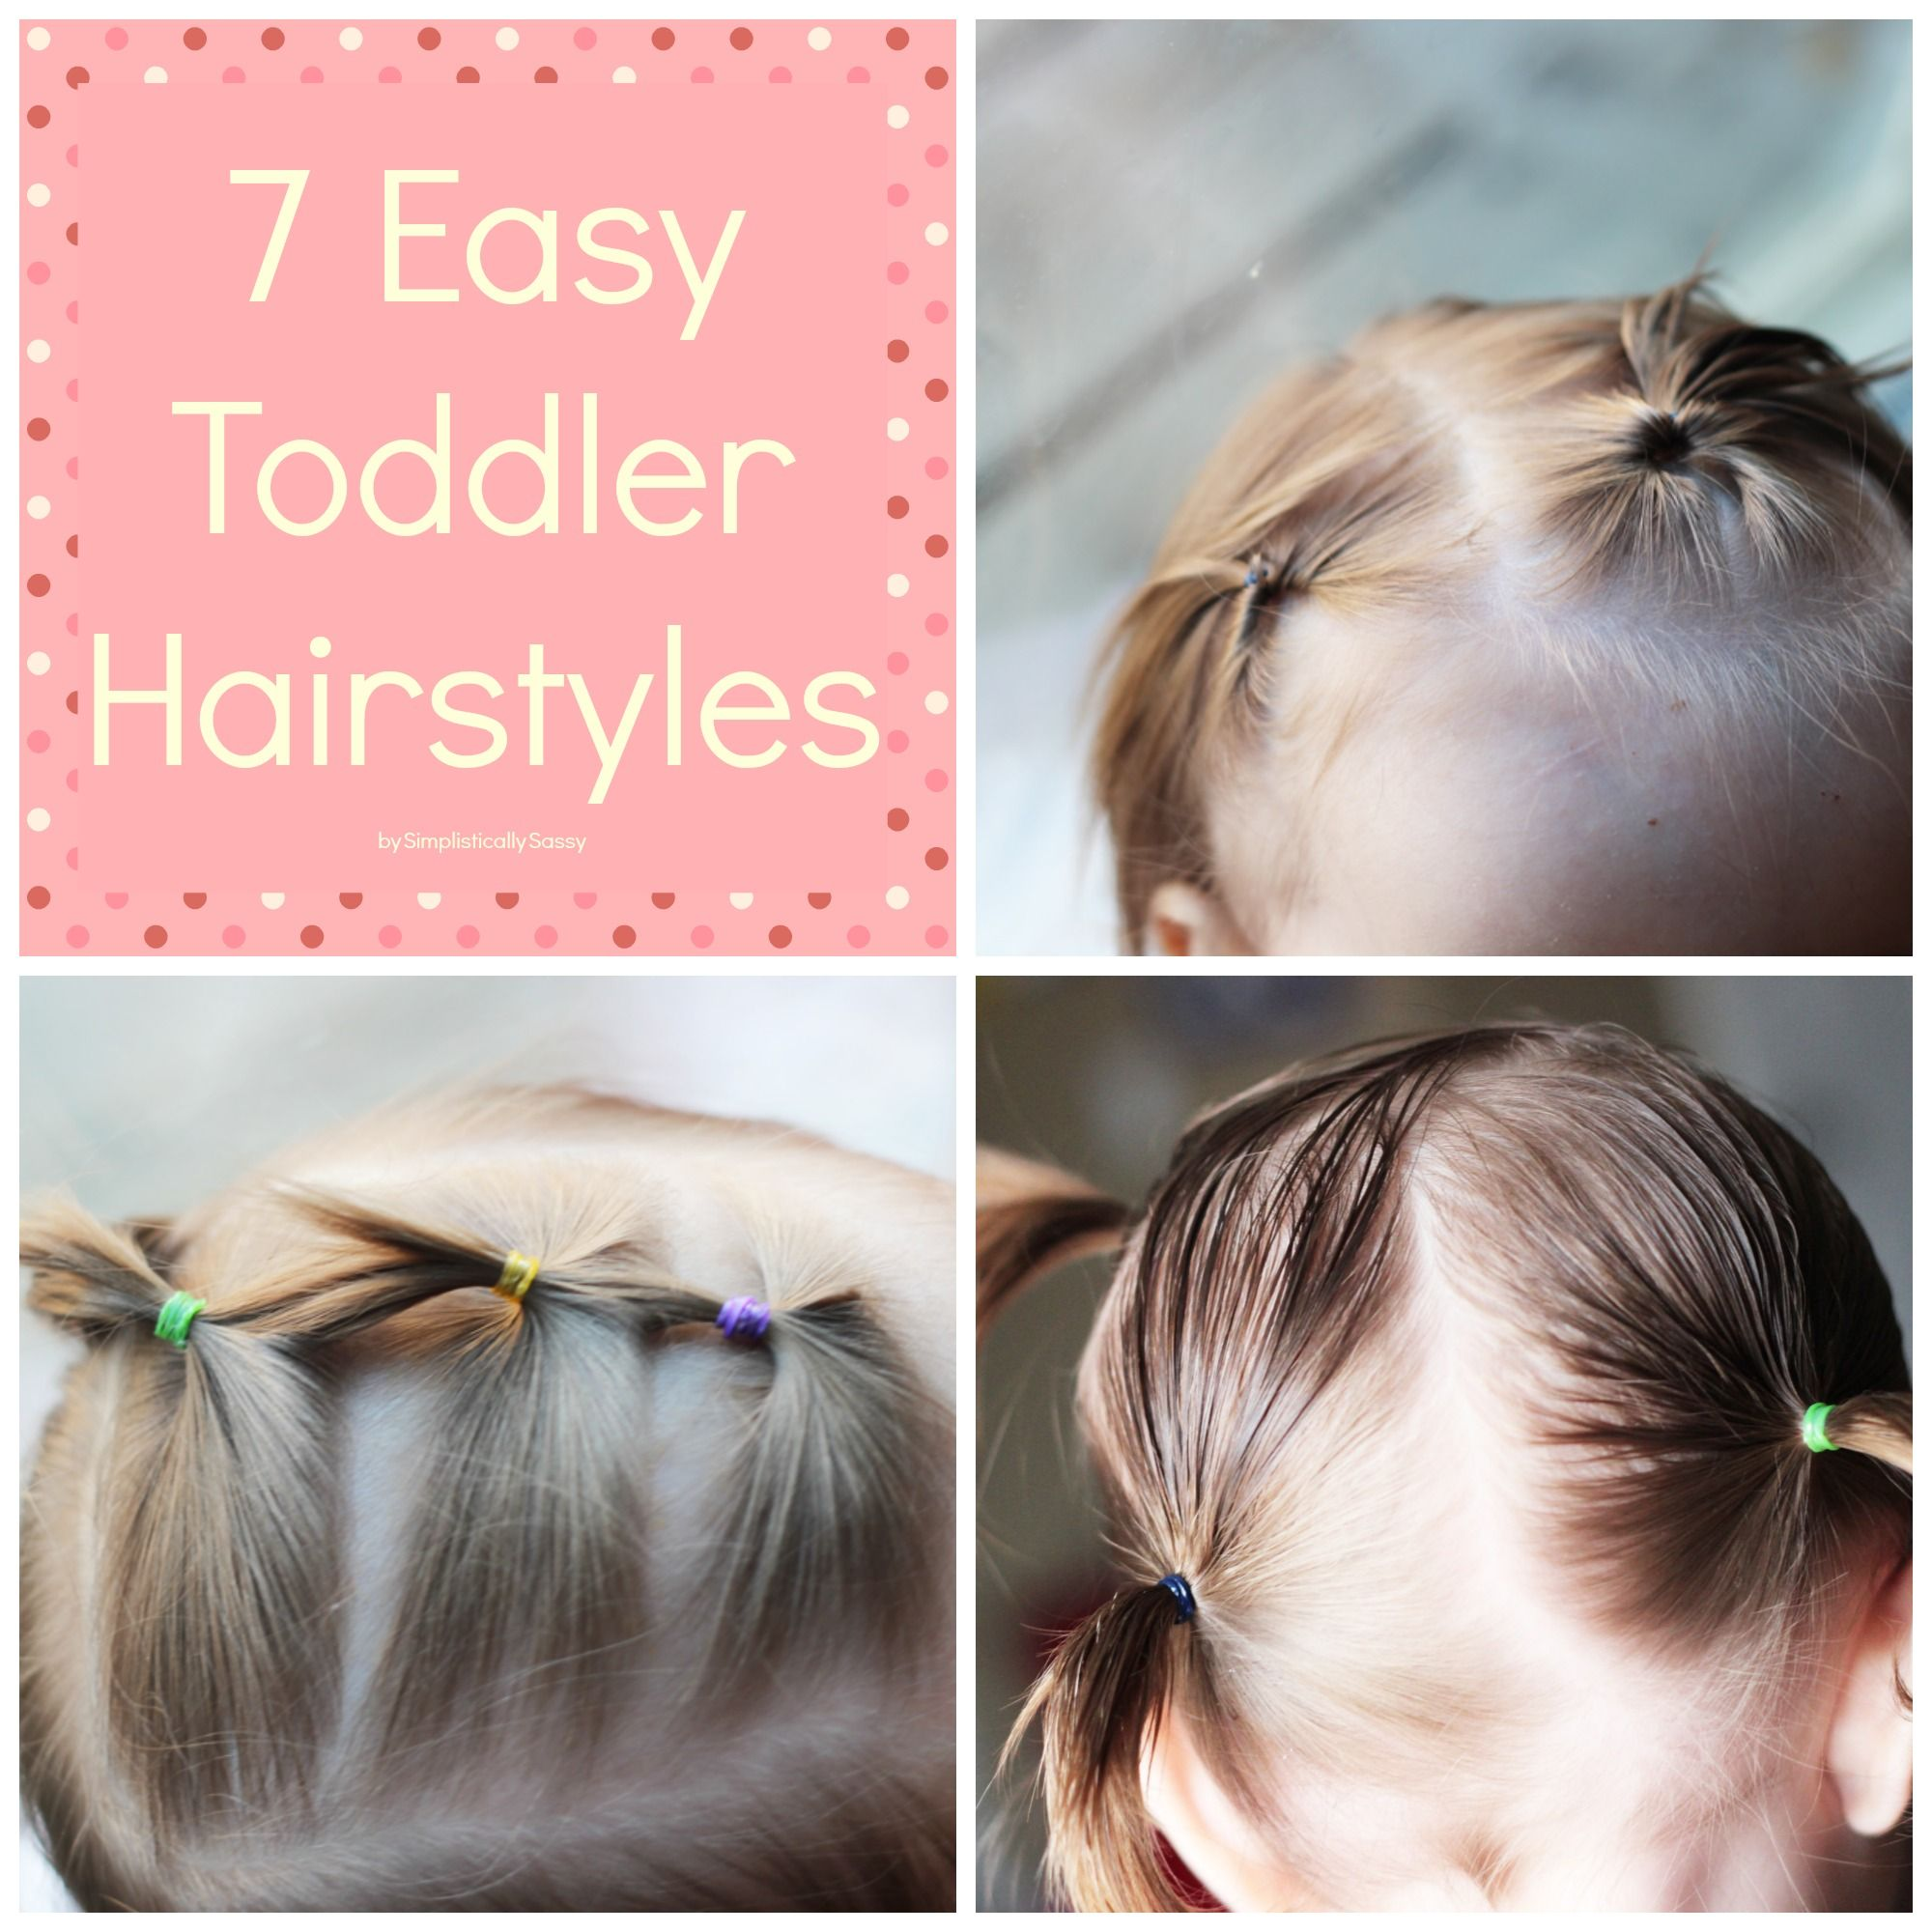 Easy Toddler Hairstyles By Simplistically Sassy Easy Toddler Hairstyles Toddler Hairstyles Girl Fine Hair Toddler Hair